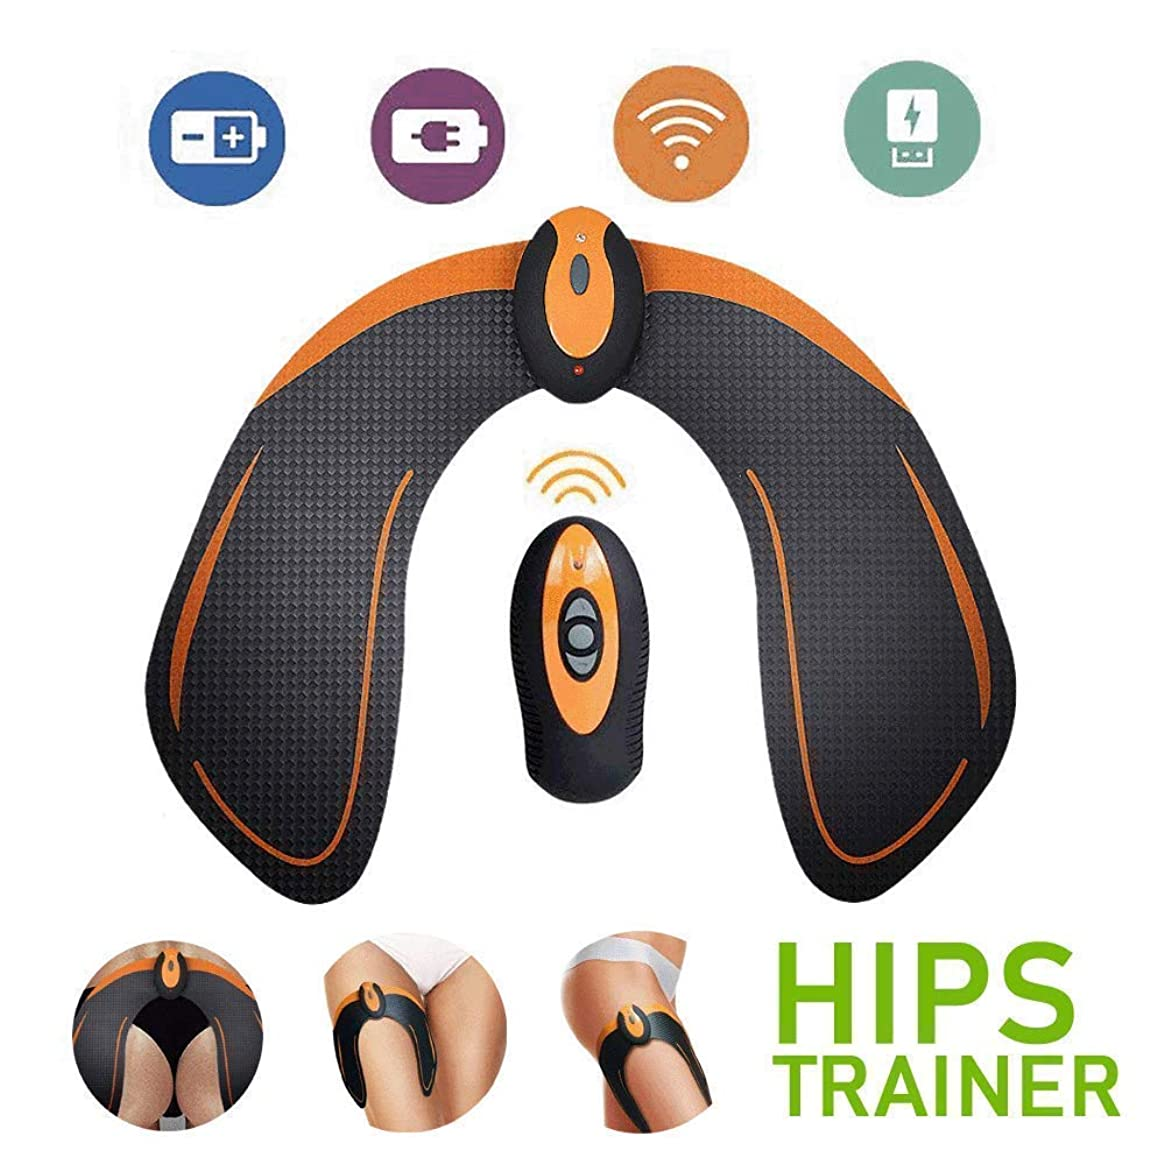 AILIDA ABS Stimulator EMS Hip Trainer Butt Toner with Intelligence System, Helps to Lift, Shape and Firm, Body Massager for Women Fitness (with Remote Control)